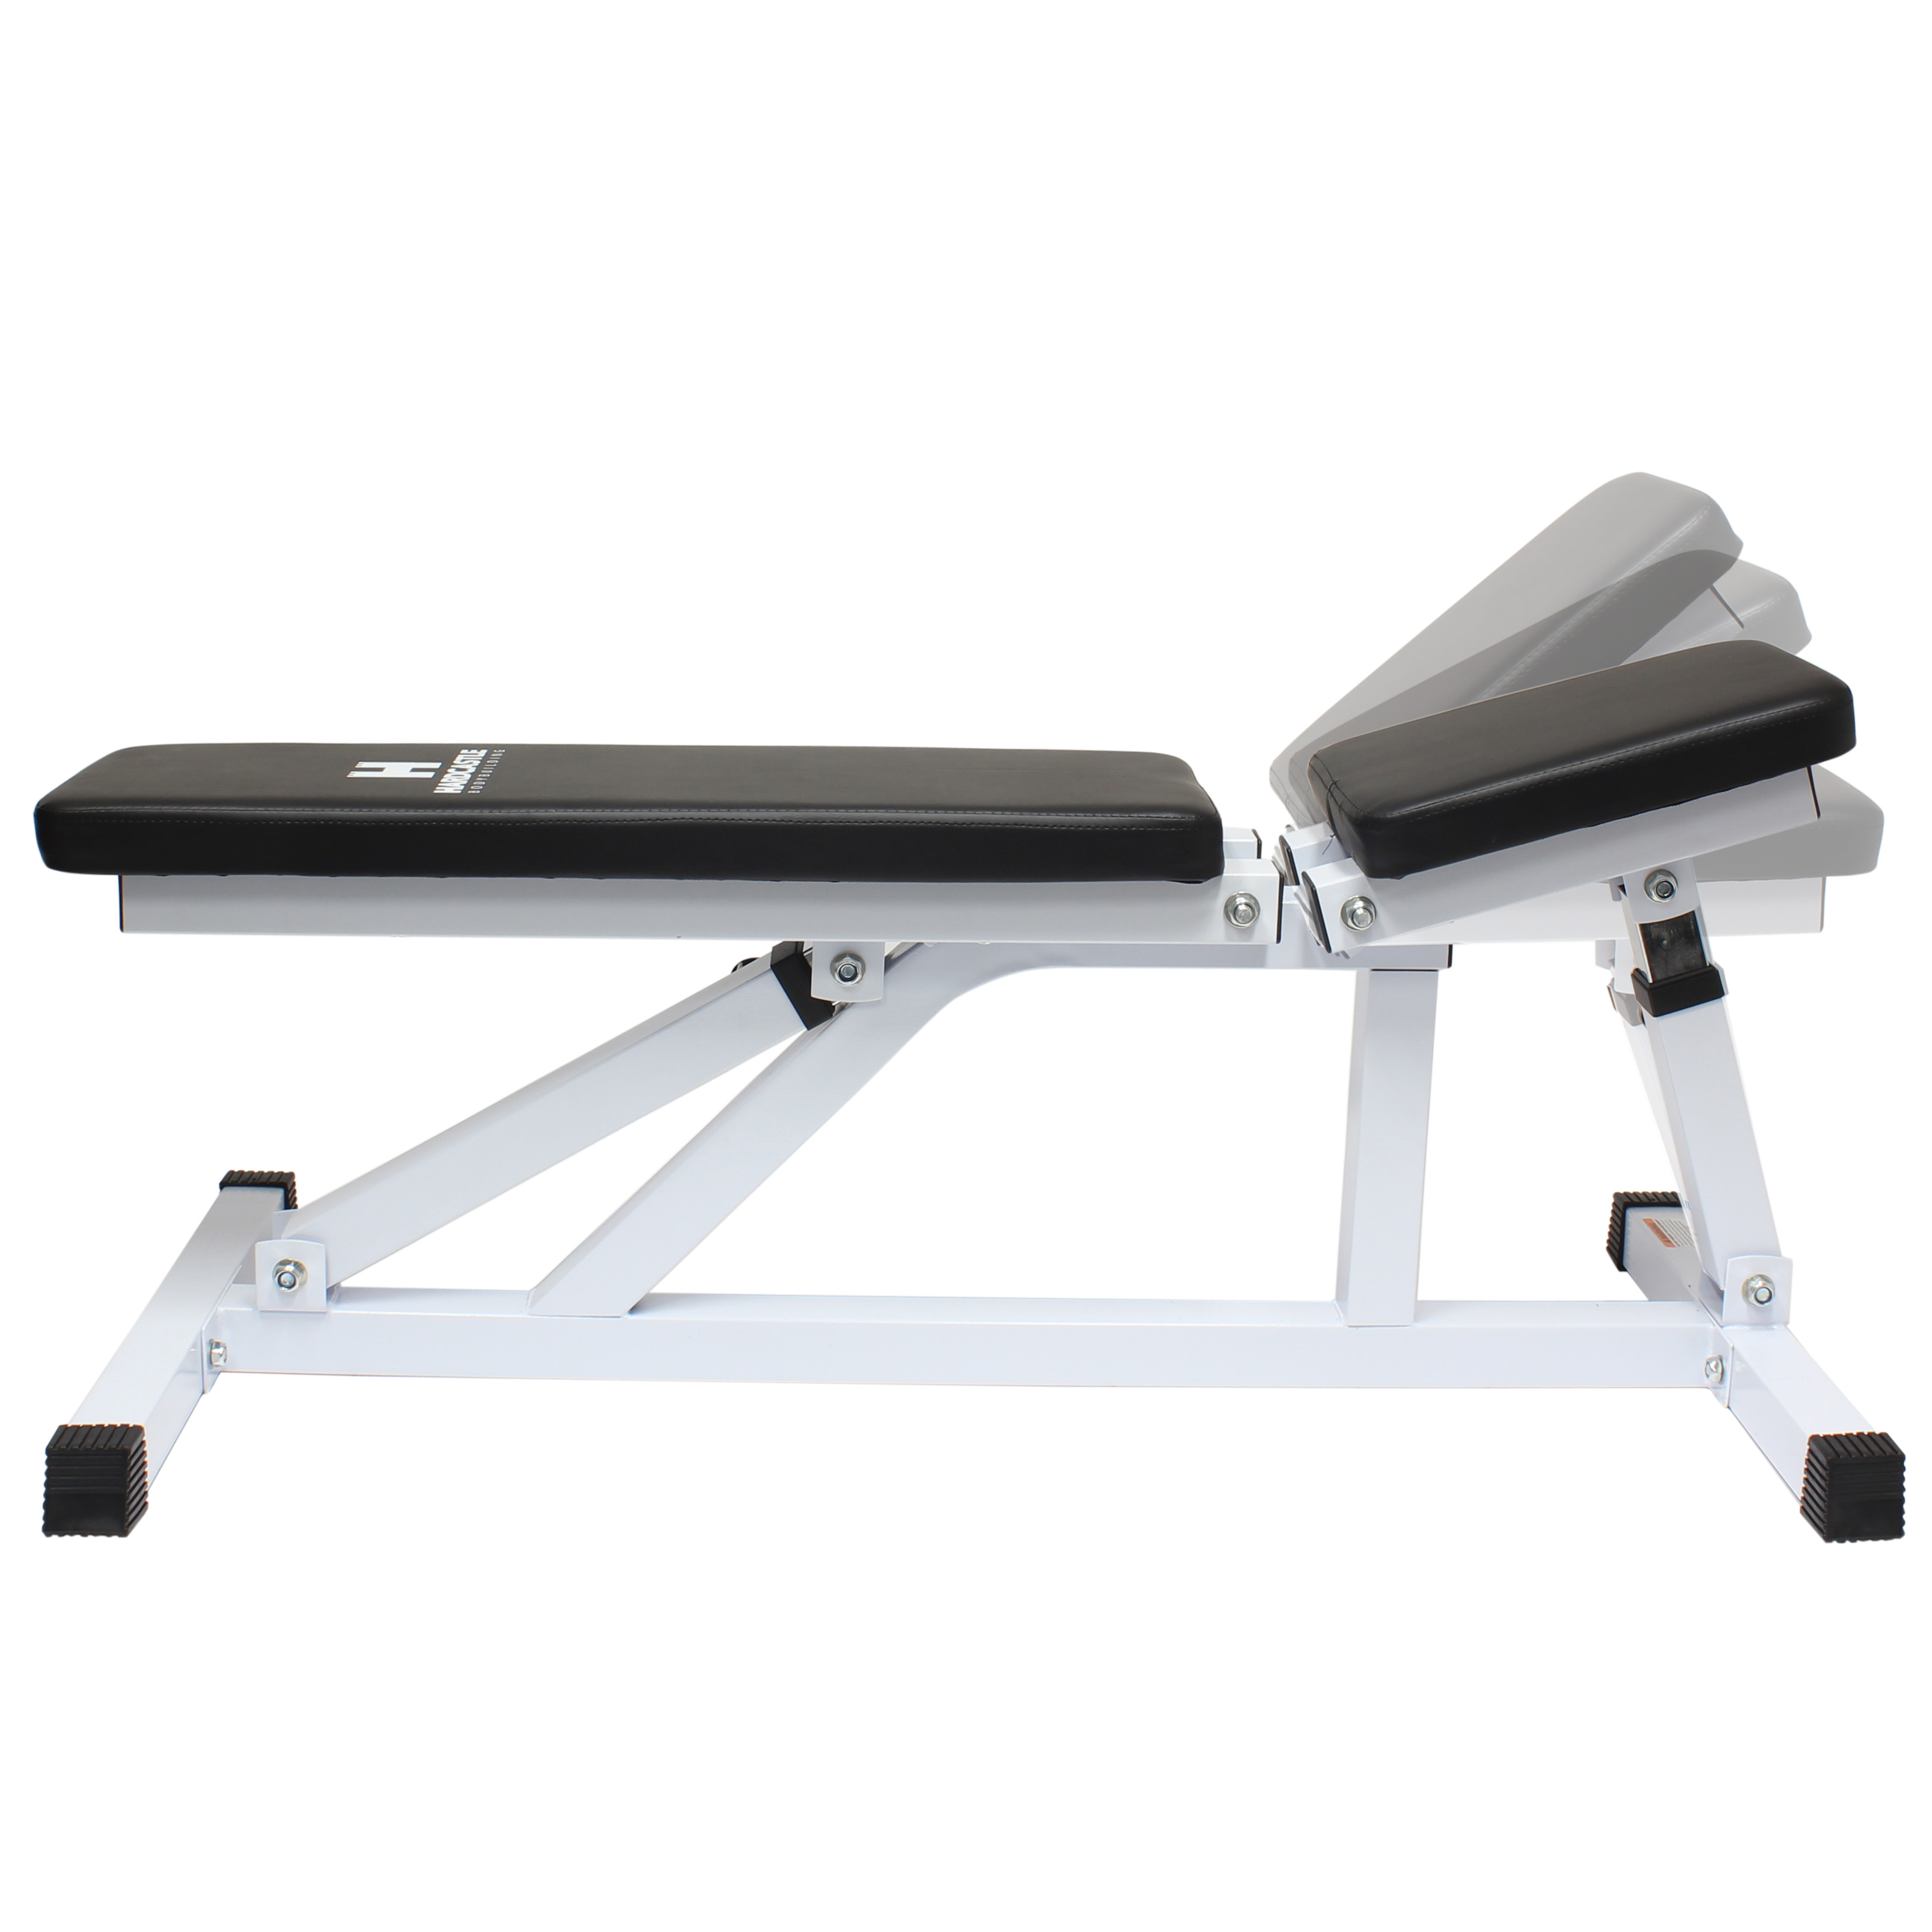 adjustable incline walmart weight product xr com gym s reviews slant workout bench gold